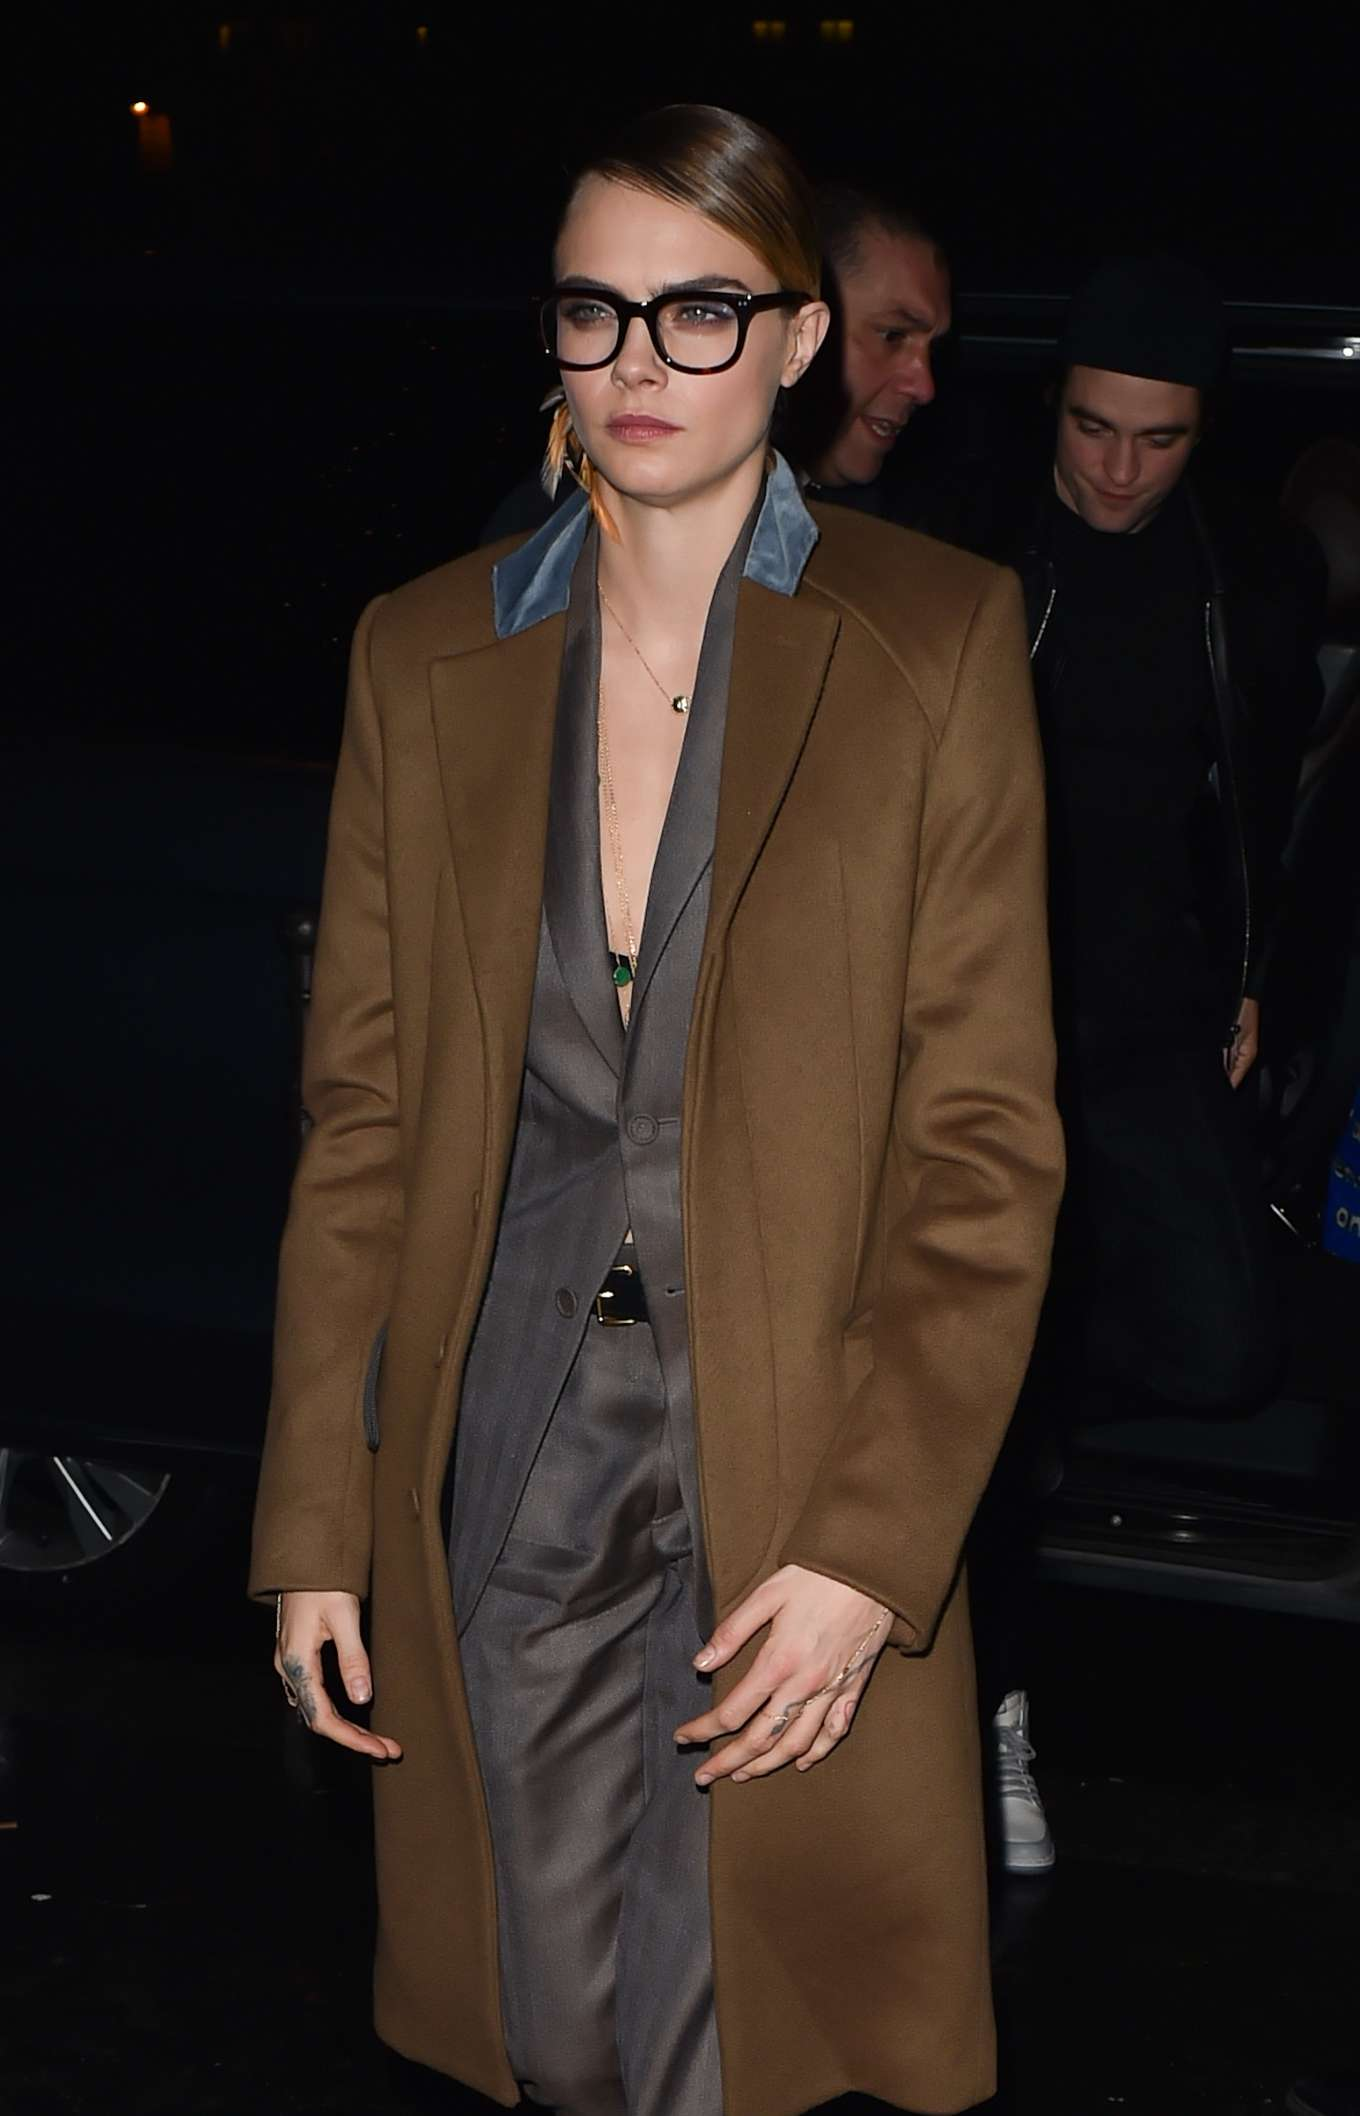 Cara Delevingne - Arriving at Cavier Kaspier Restaurant in Paris